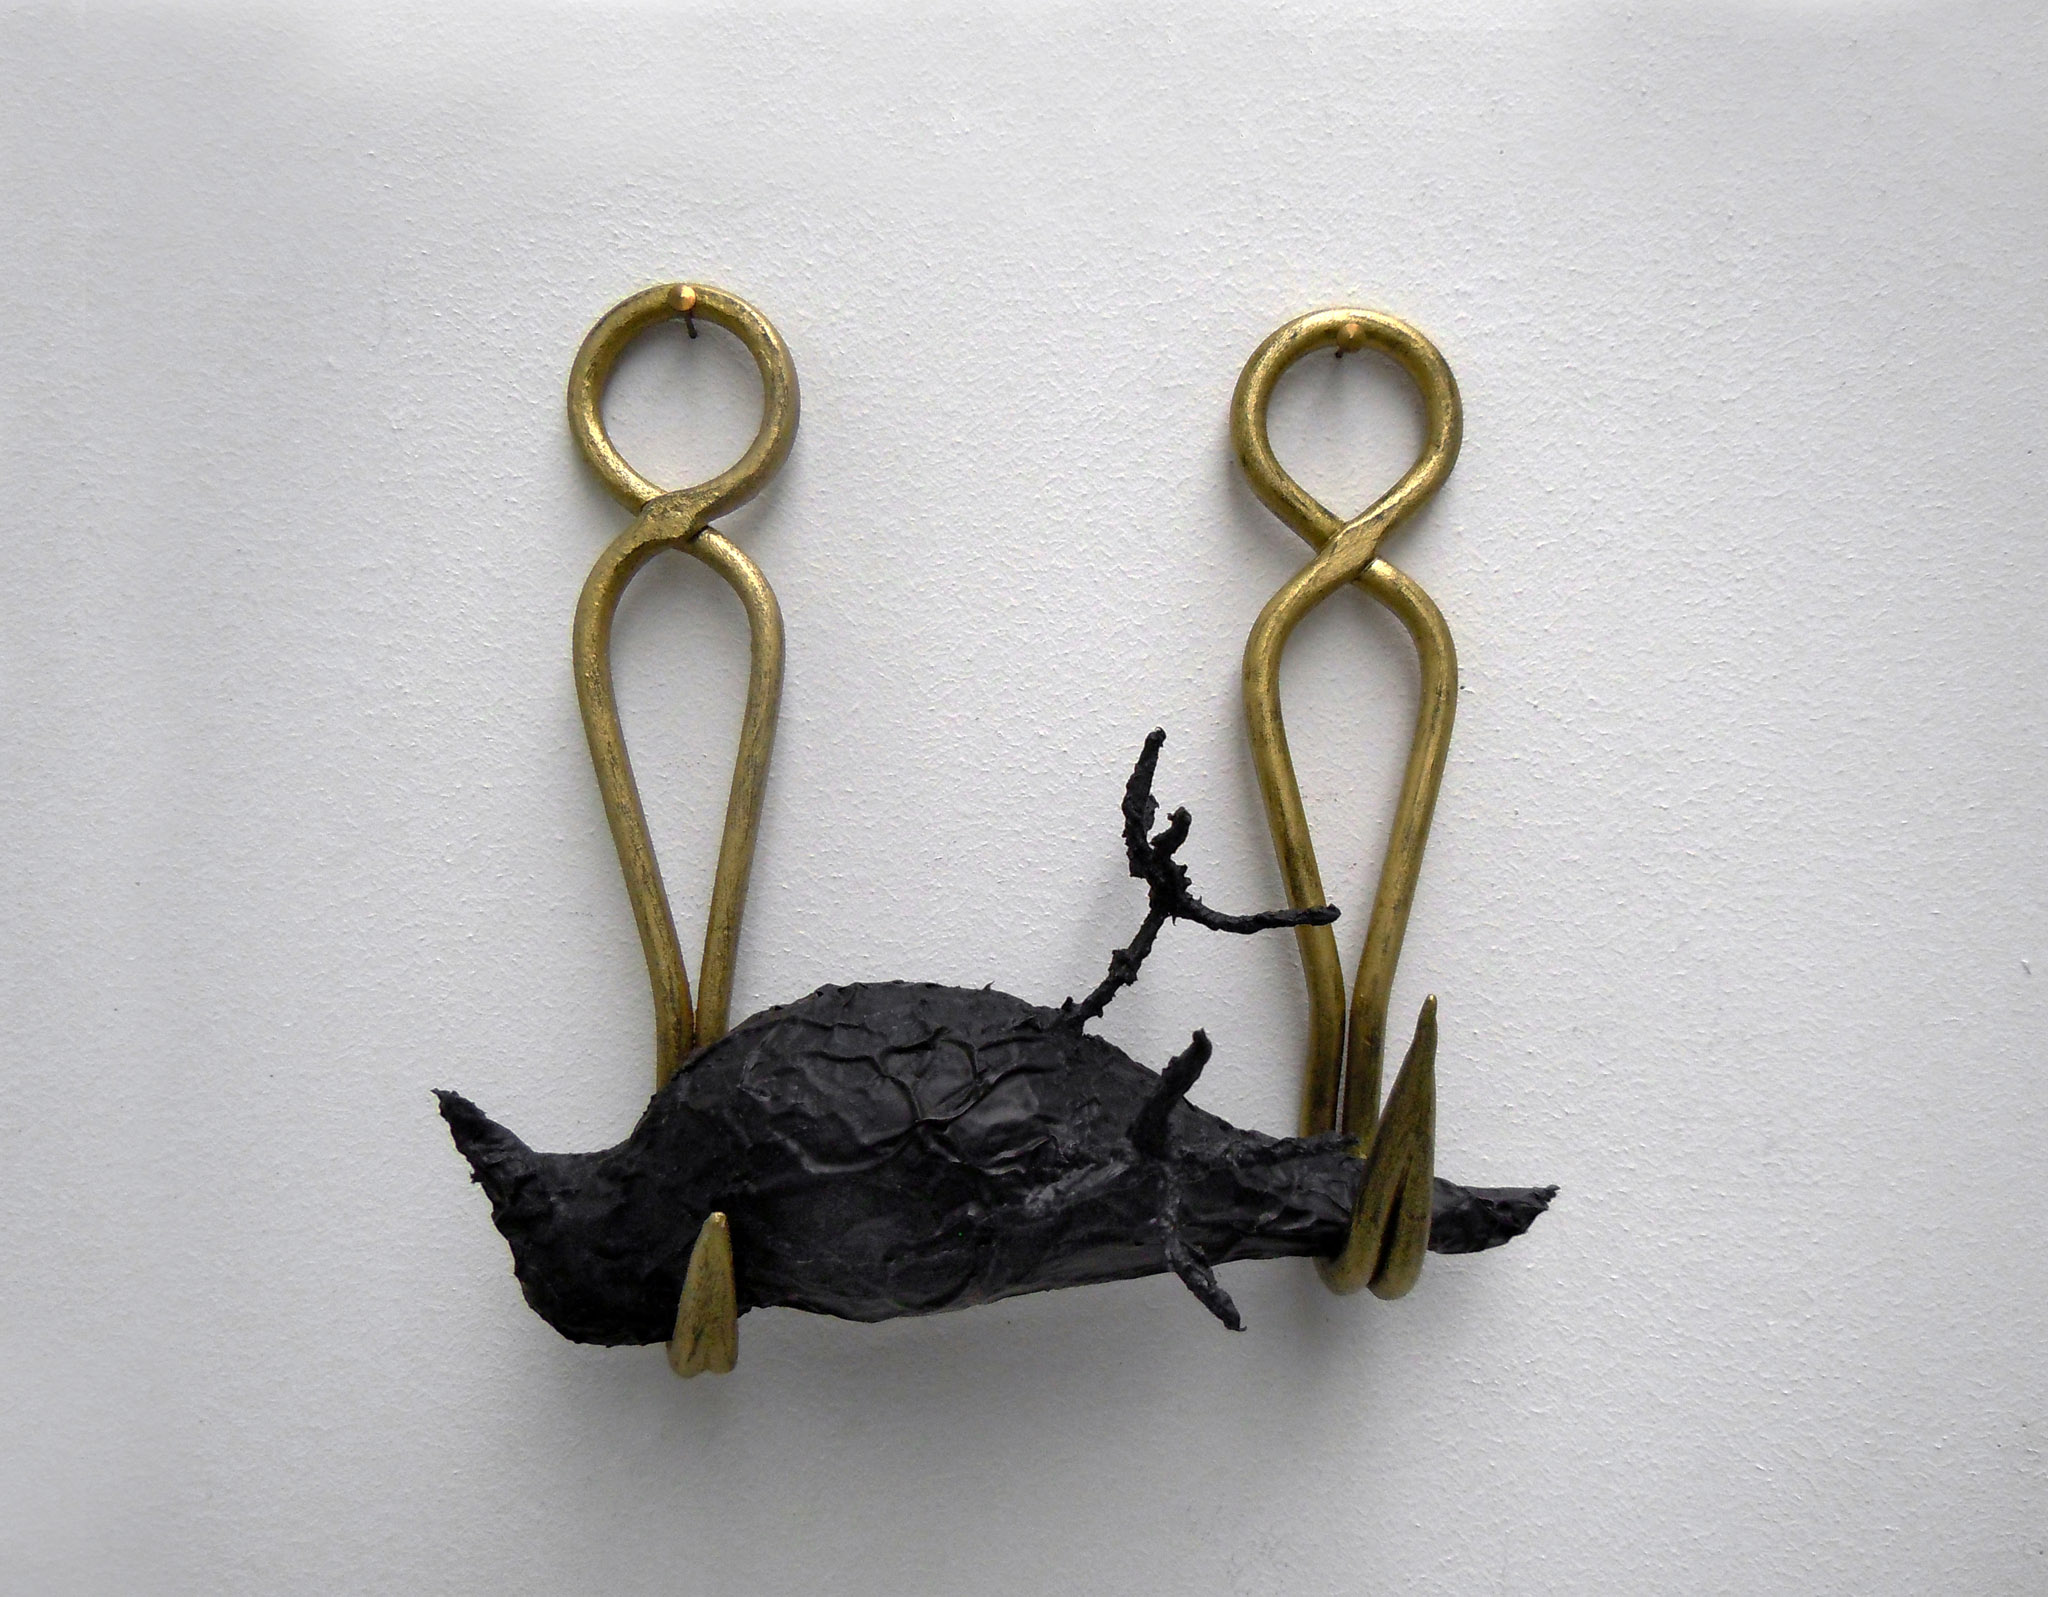 Annette Messager L'oiseau, 2015 Black aluminium foil, 2 painted hooks